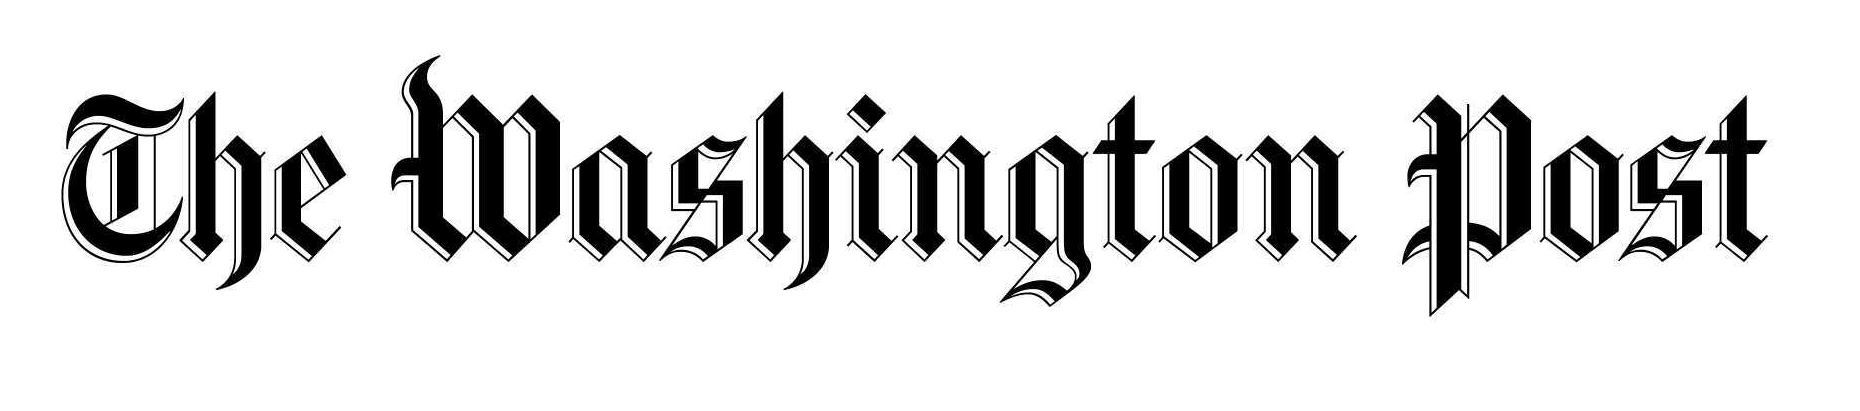 http://reparteeroom.files.wordpress.com/2012/05/washington-post-masthead.jpg